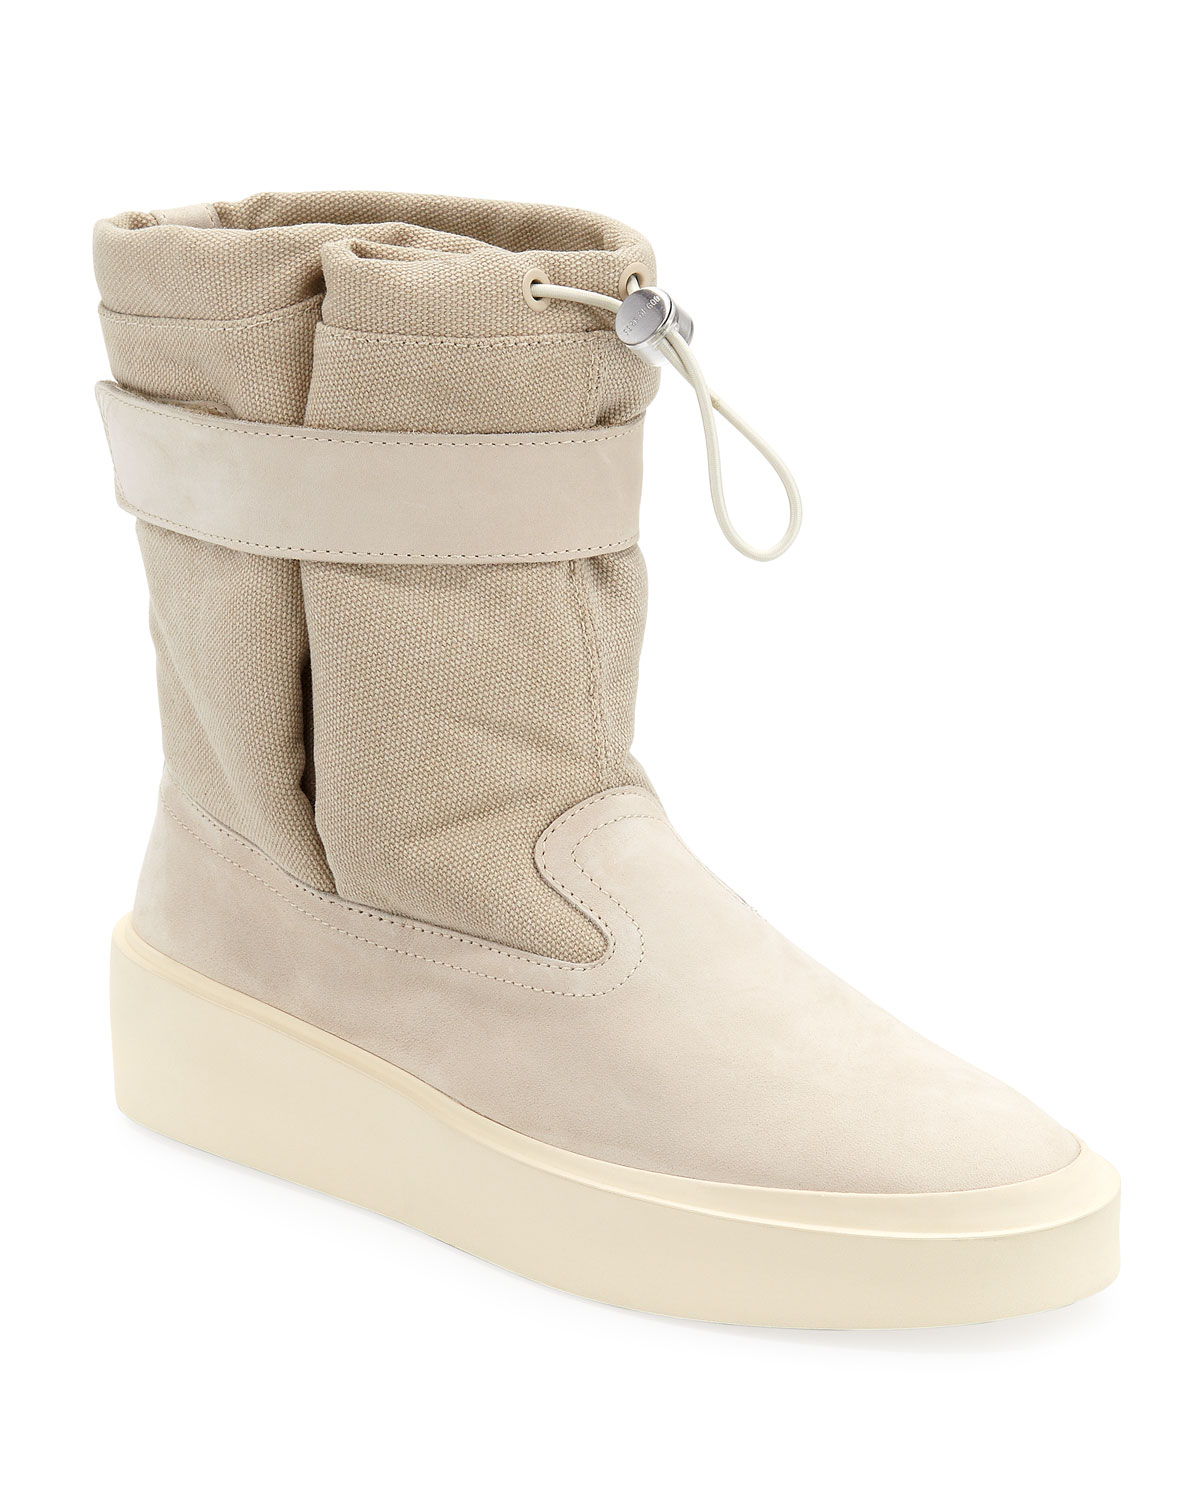 Fear Of God Sneakers MEN'S SKI LOUNGE SUEDE AND CANVAS SNEAKERS